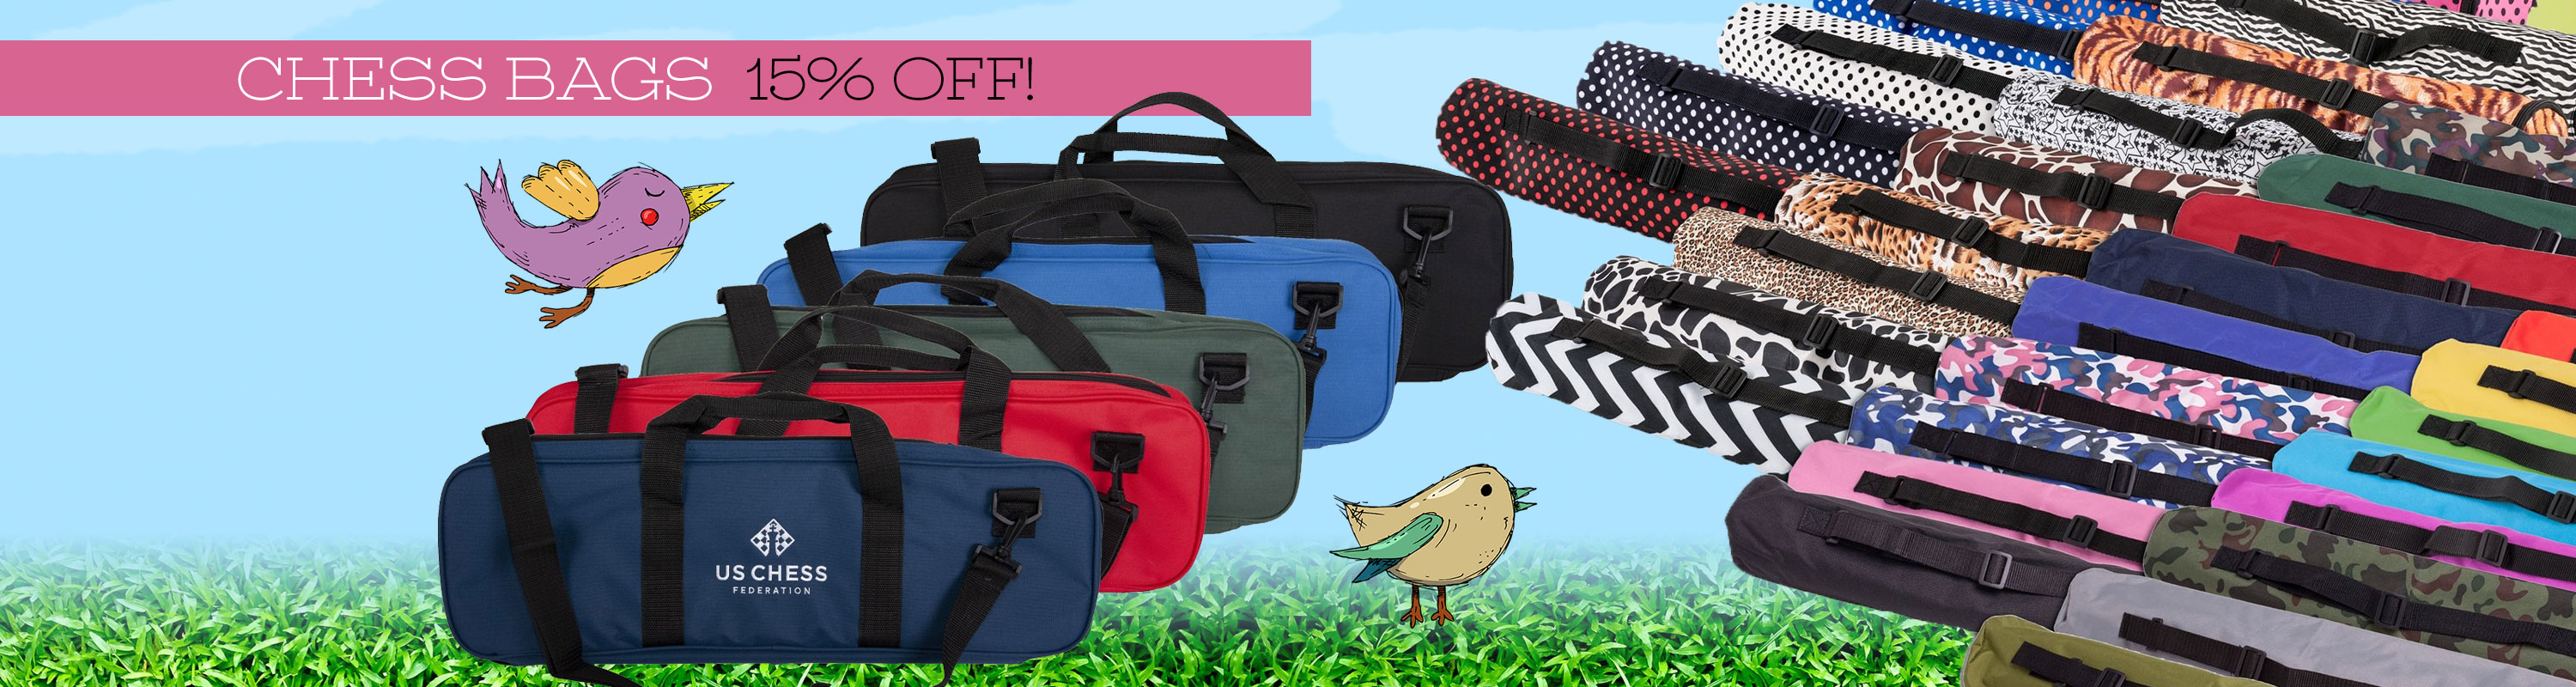 Chess Bags 15% Off